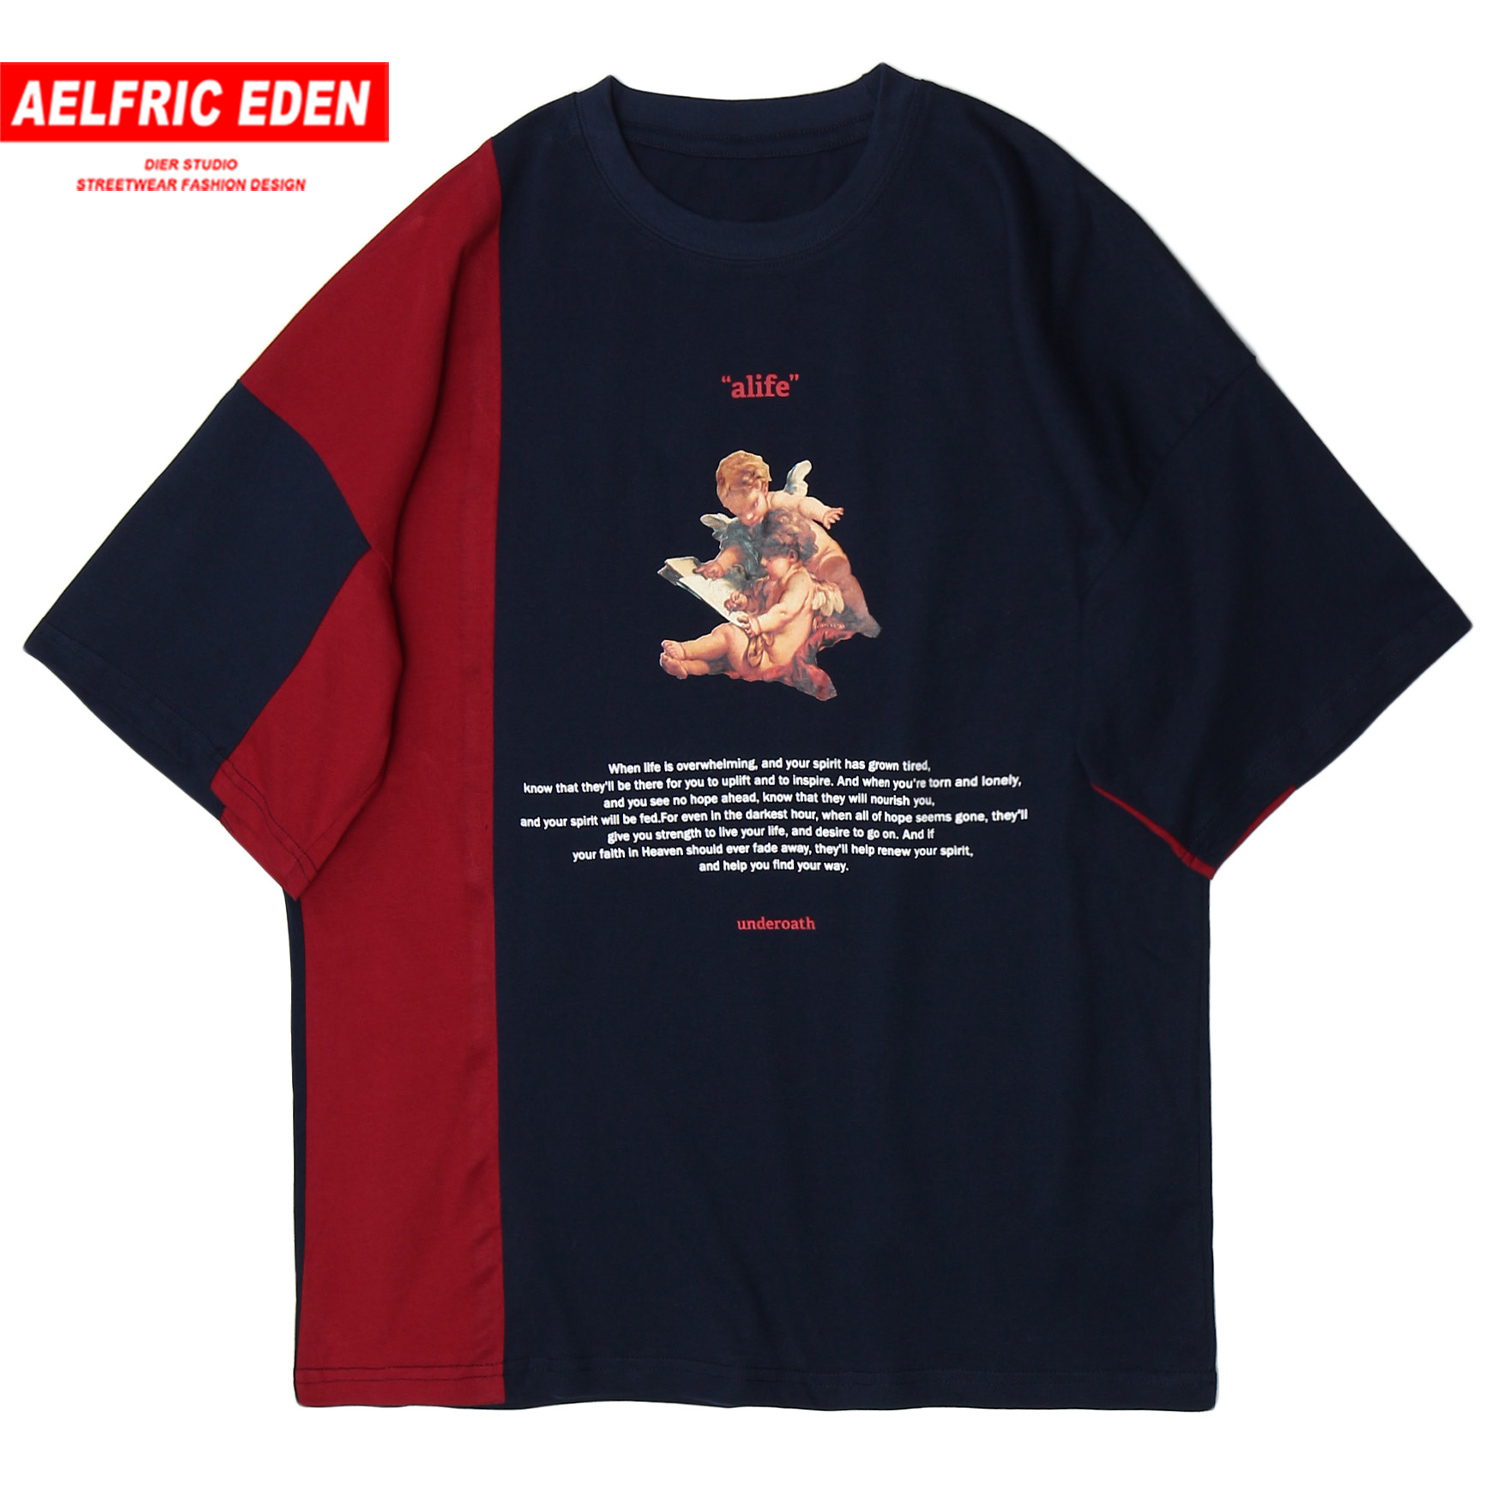 Aelfric Eden Patchwork Harajuku T Shirt Mens 2020 Hip Hop Streetwear Painting Printed Half Sleeve Loose Short Sleeve Tops Tees